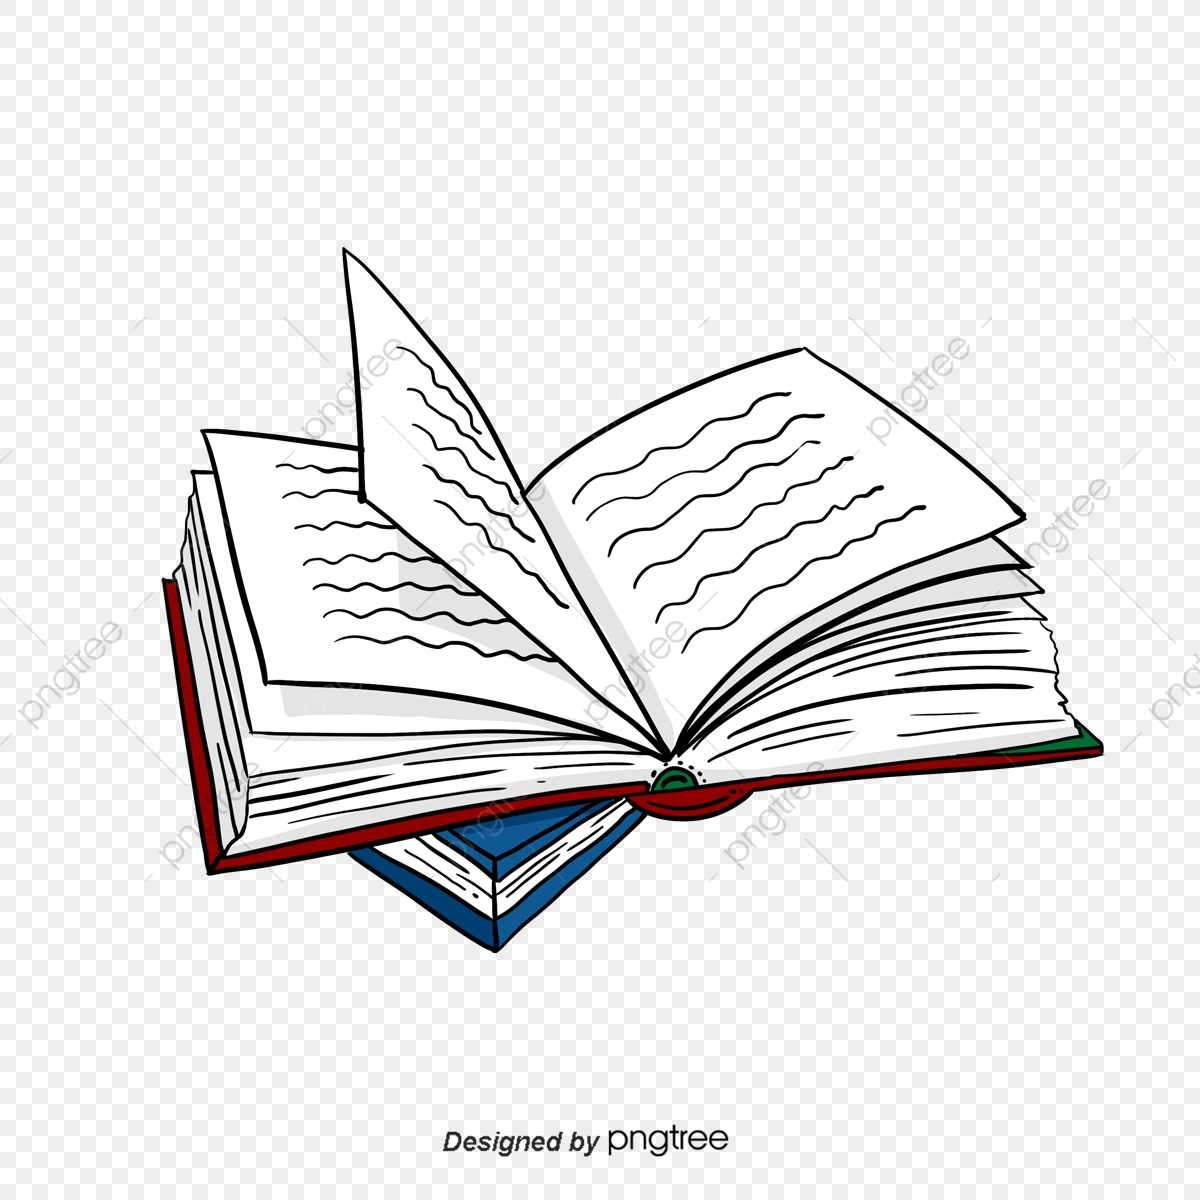 Book information. Open books working png